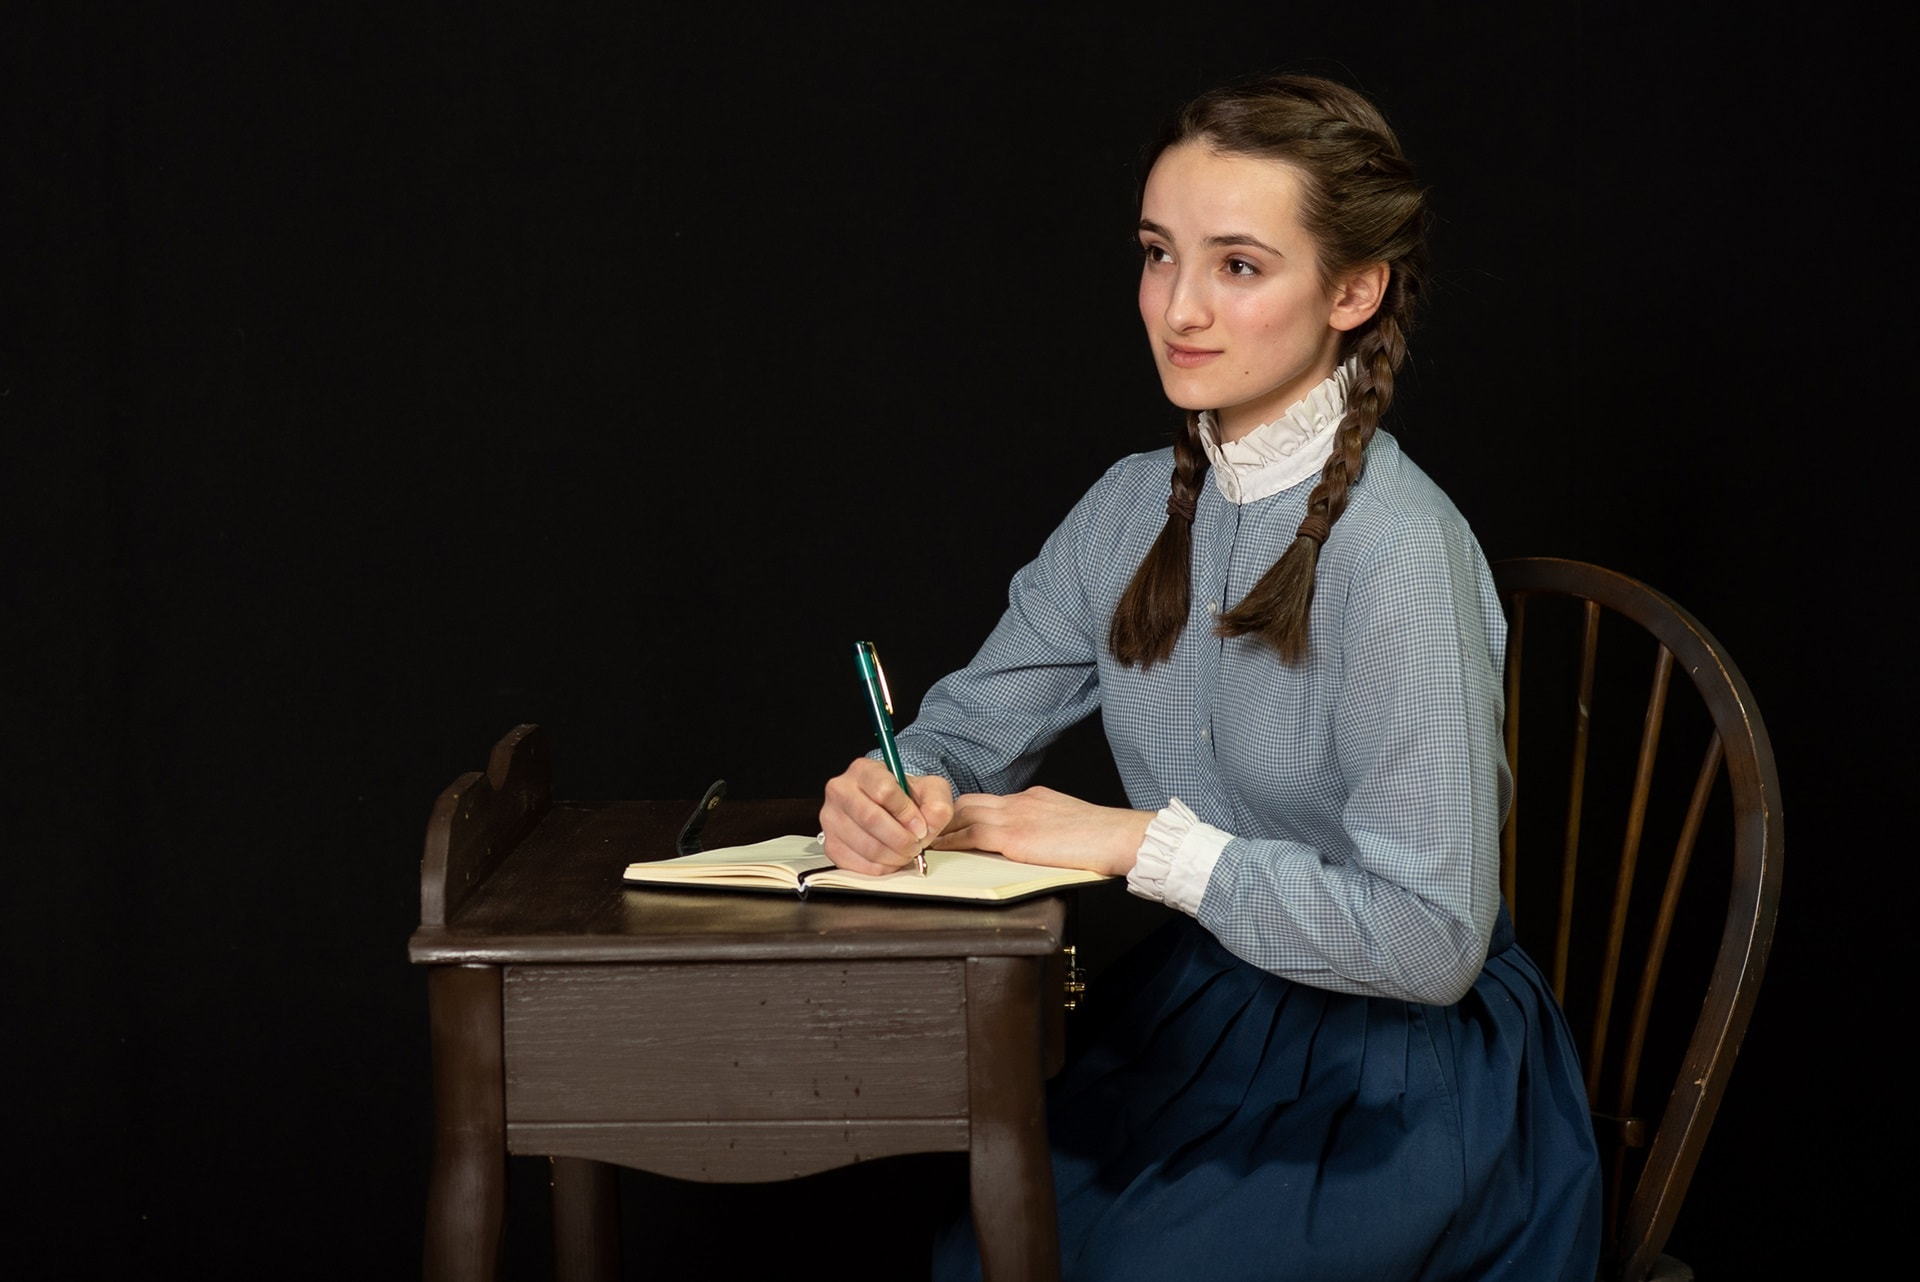 Sophia Manicone as Anne Frank in 'The Diary of Anne Frank' by Reston Community Players. Photo by Jennifer Heffner Photography.